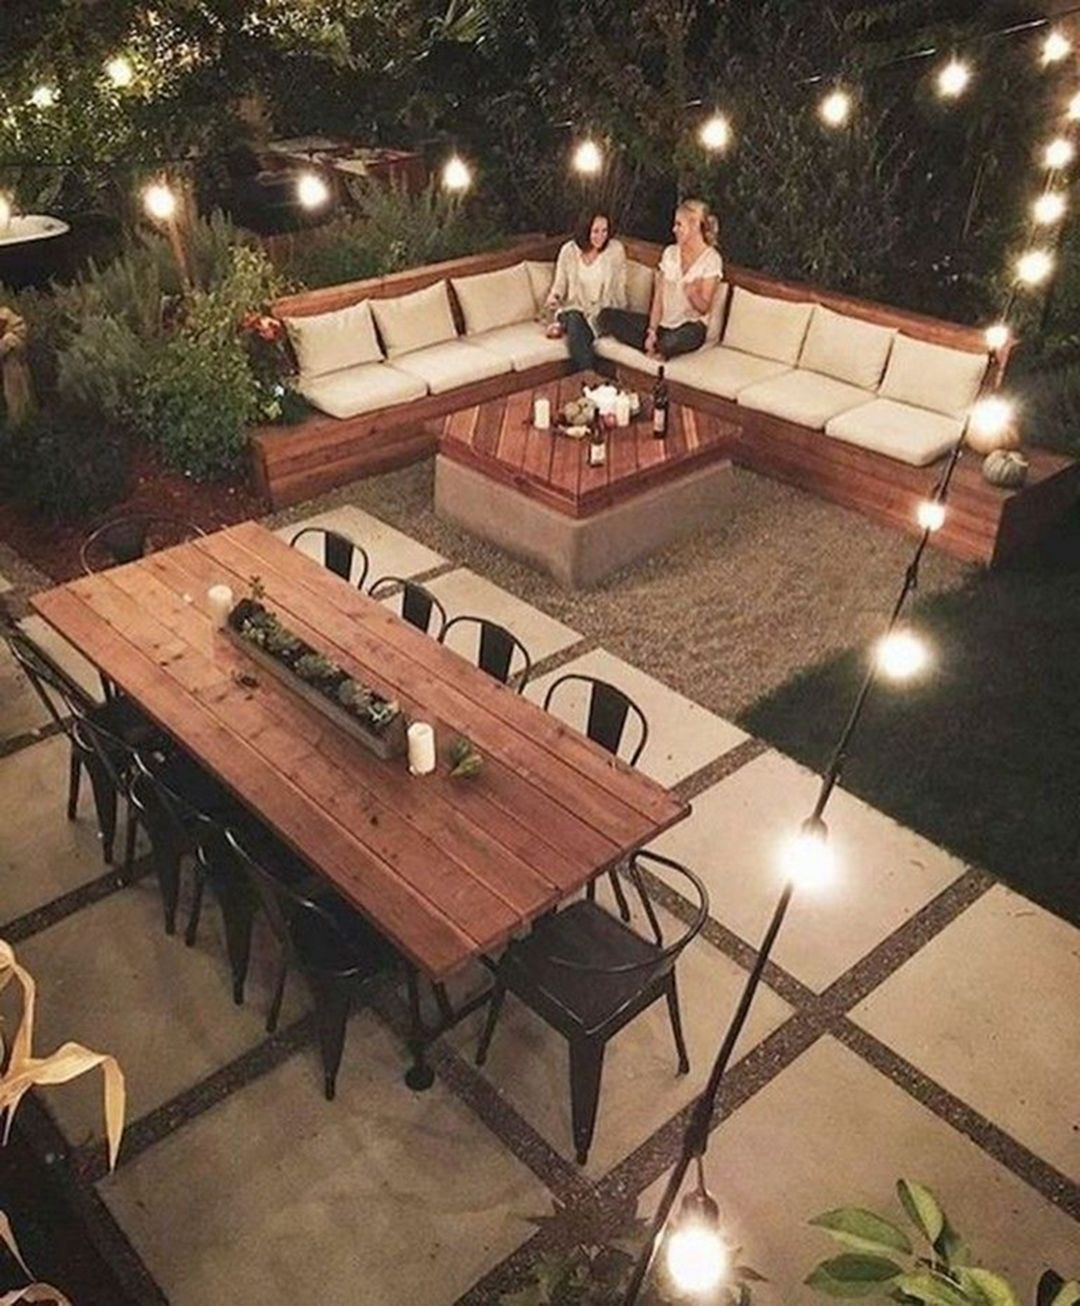 11 Amazing Backyard Design Ideas For Amazing Space Balcony for Backyard Layout Ideas